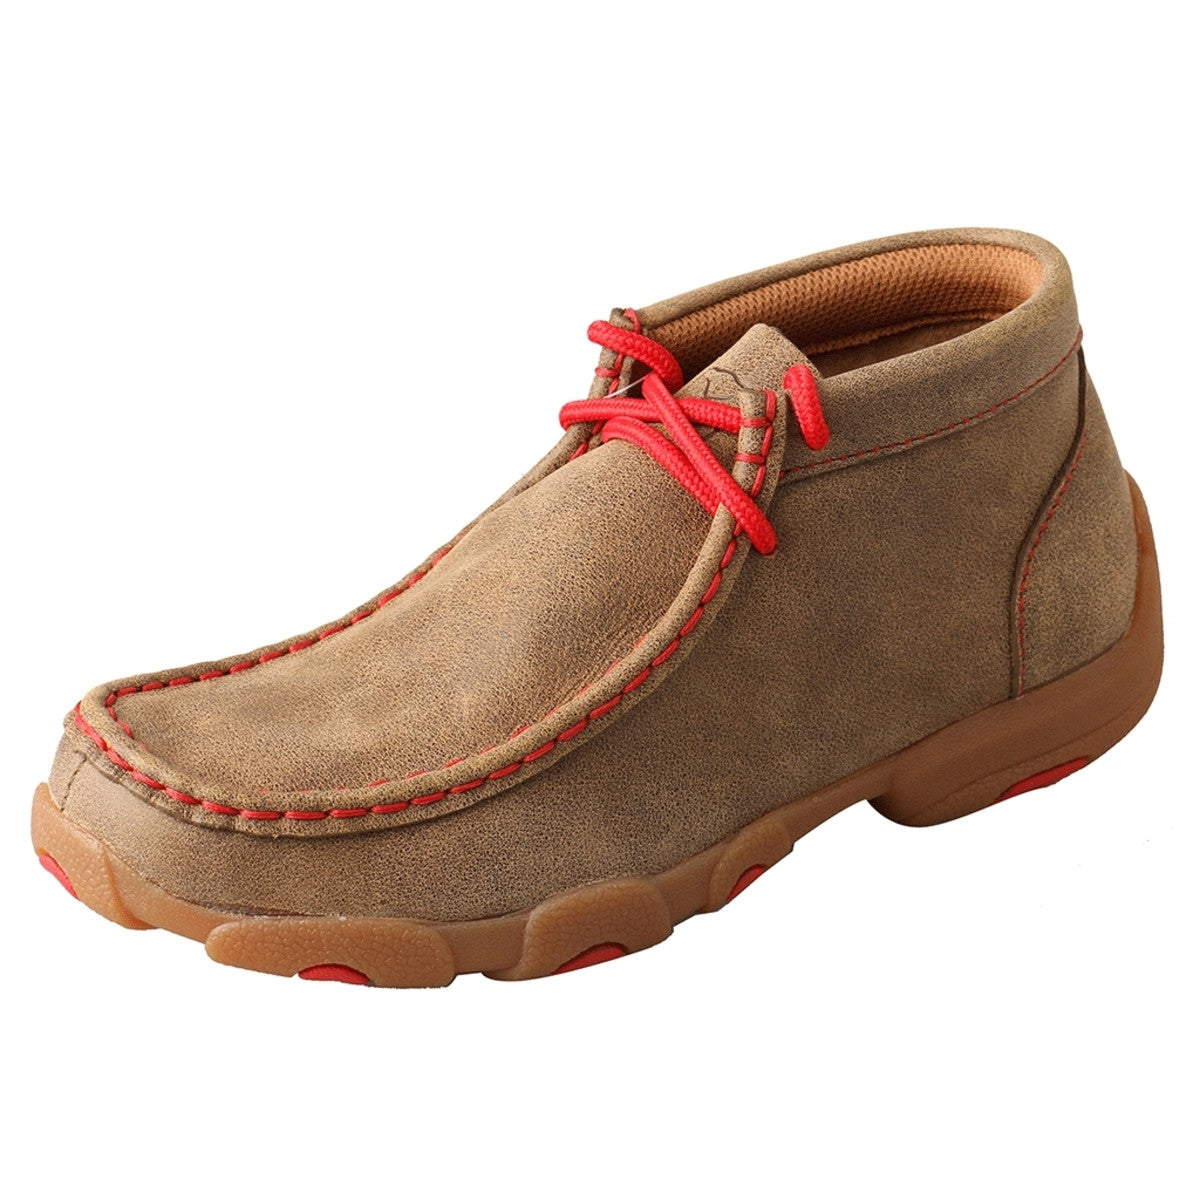 Kids' Twisted X Chukka Driving Moccasins Shoe in Bomber & Red from the side view